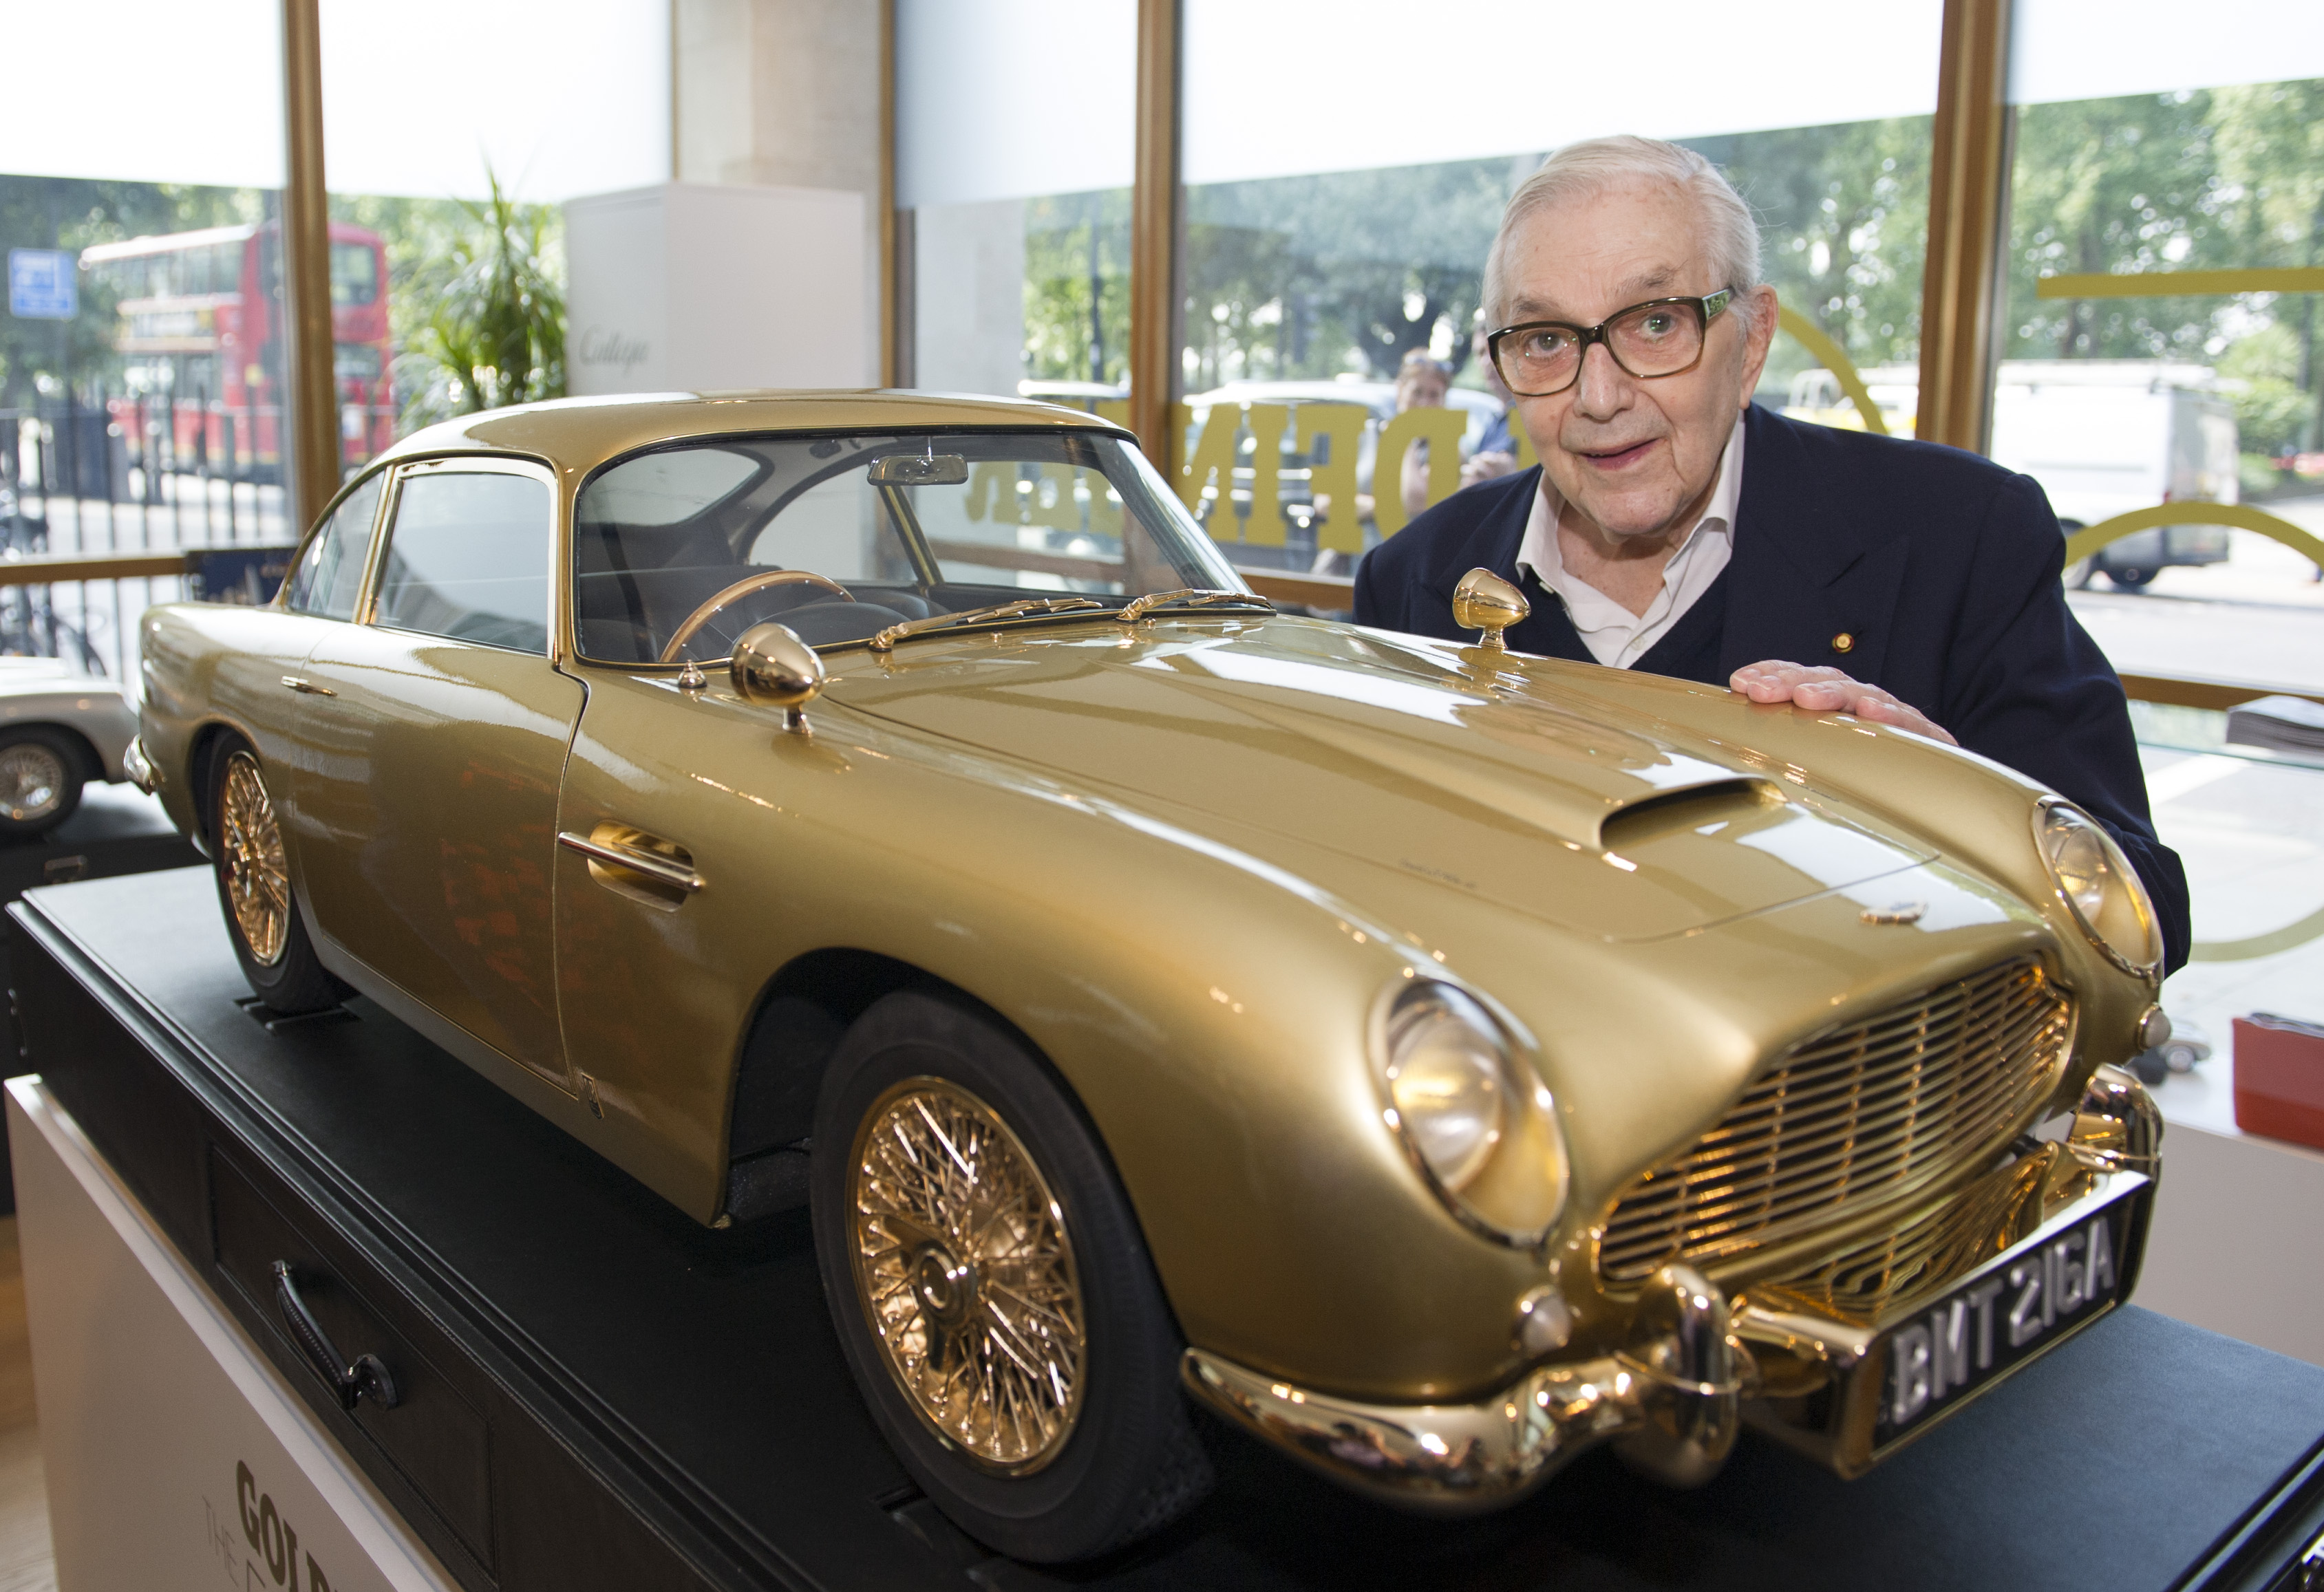 Superior ... 24 Carat Gold Aston Martin DB5 Model